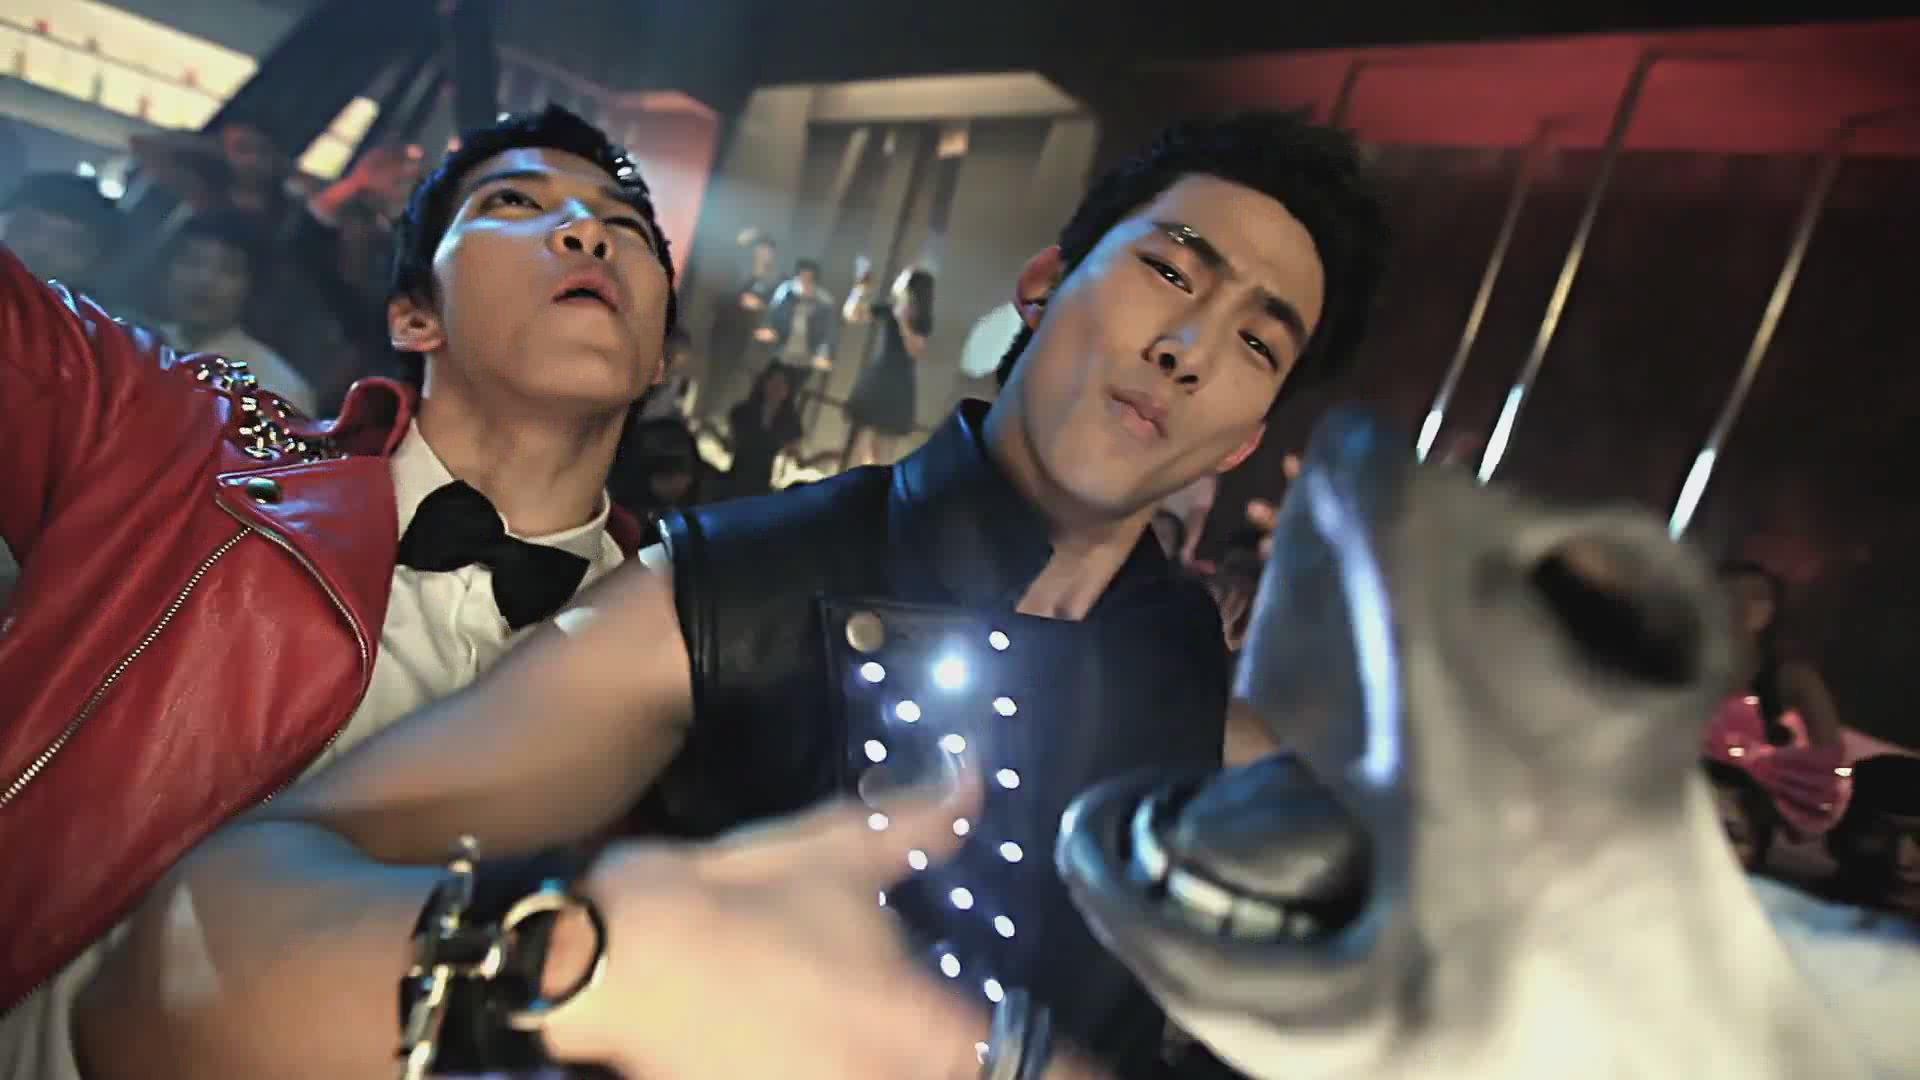 Taecyeon Hands Up MV - taecyeon 2pm Image (27831178) - Fanpop